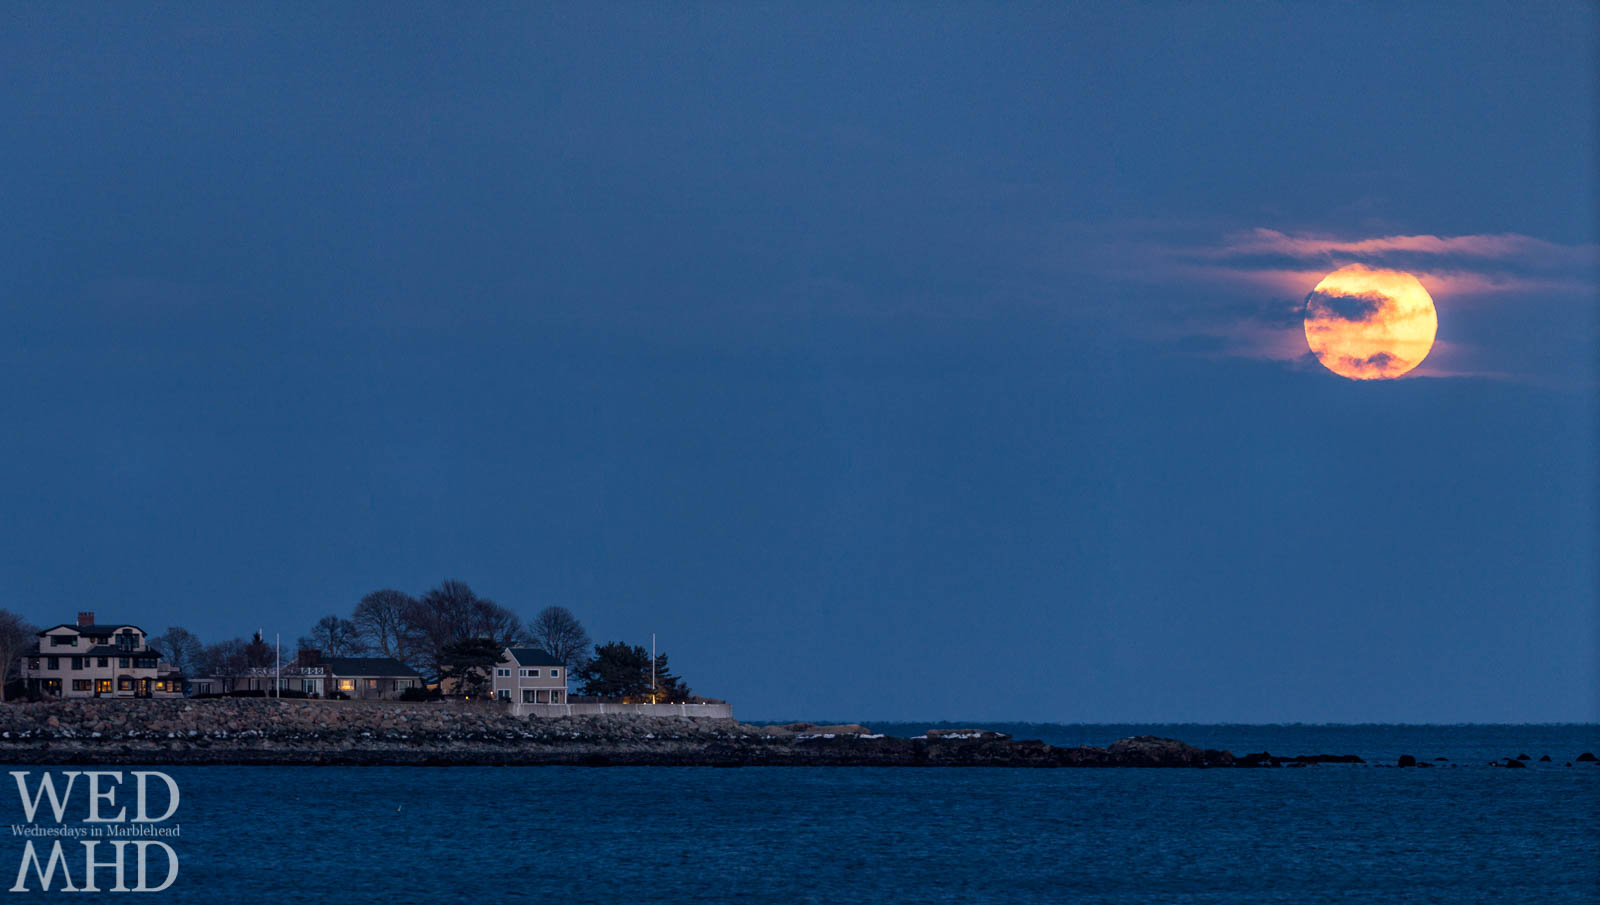 The full worm moon rises on a cold March evening over flying point on Marblehead Neck